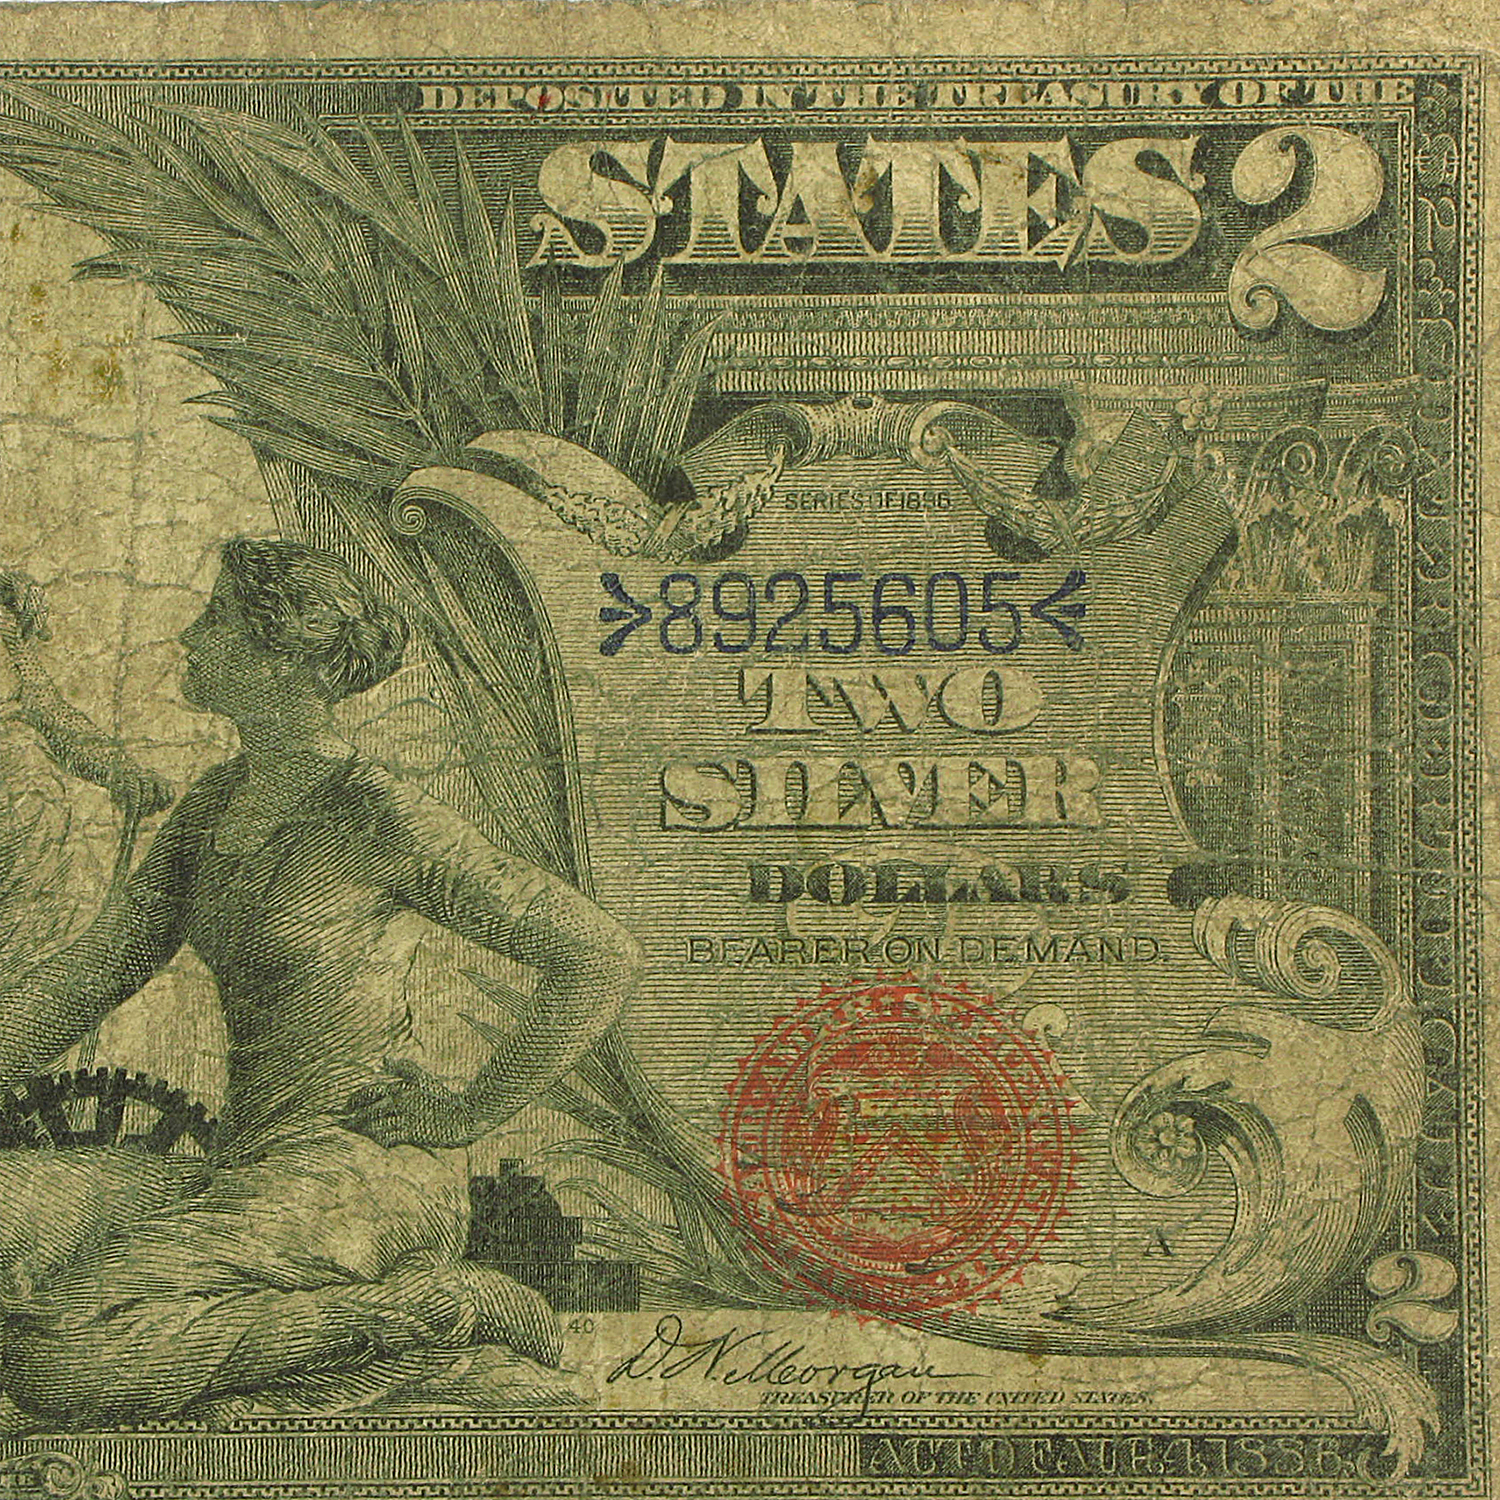 1896 $2.00 Silver Certificate Educational Note Good/VG